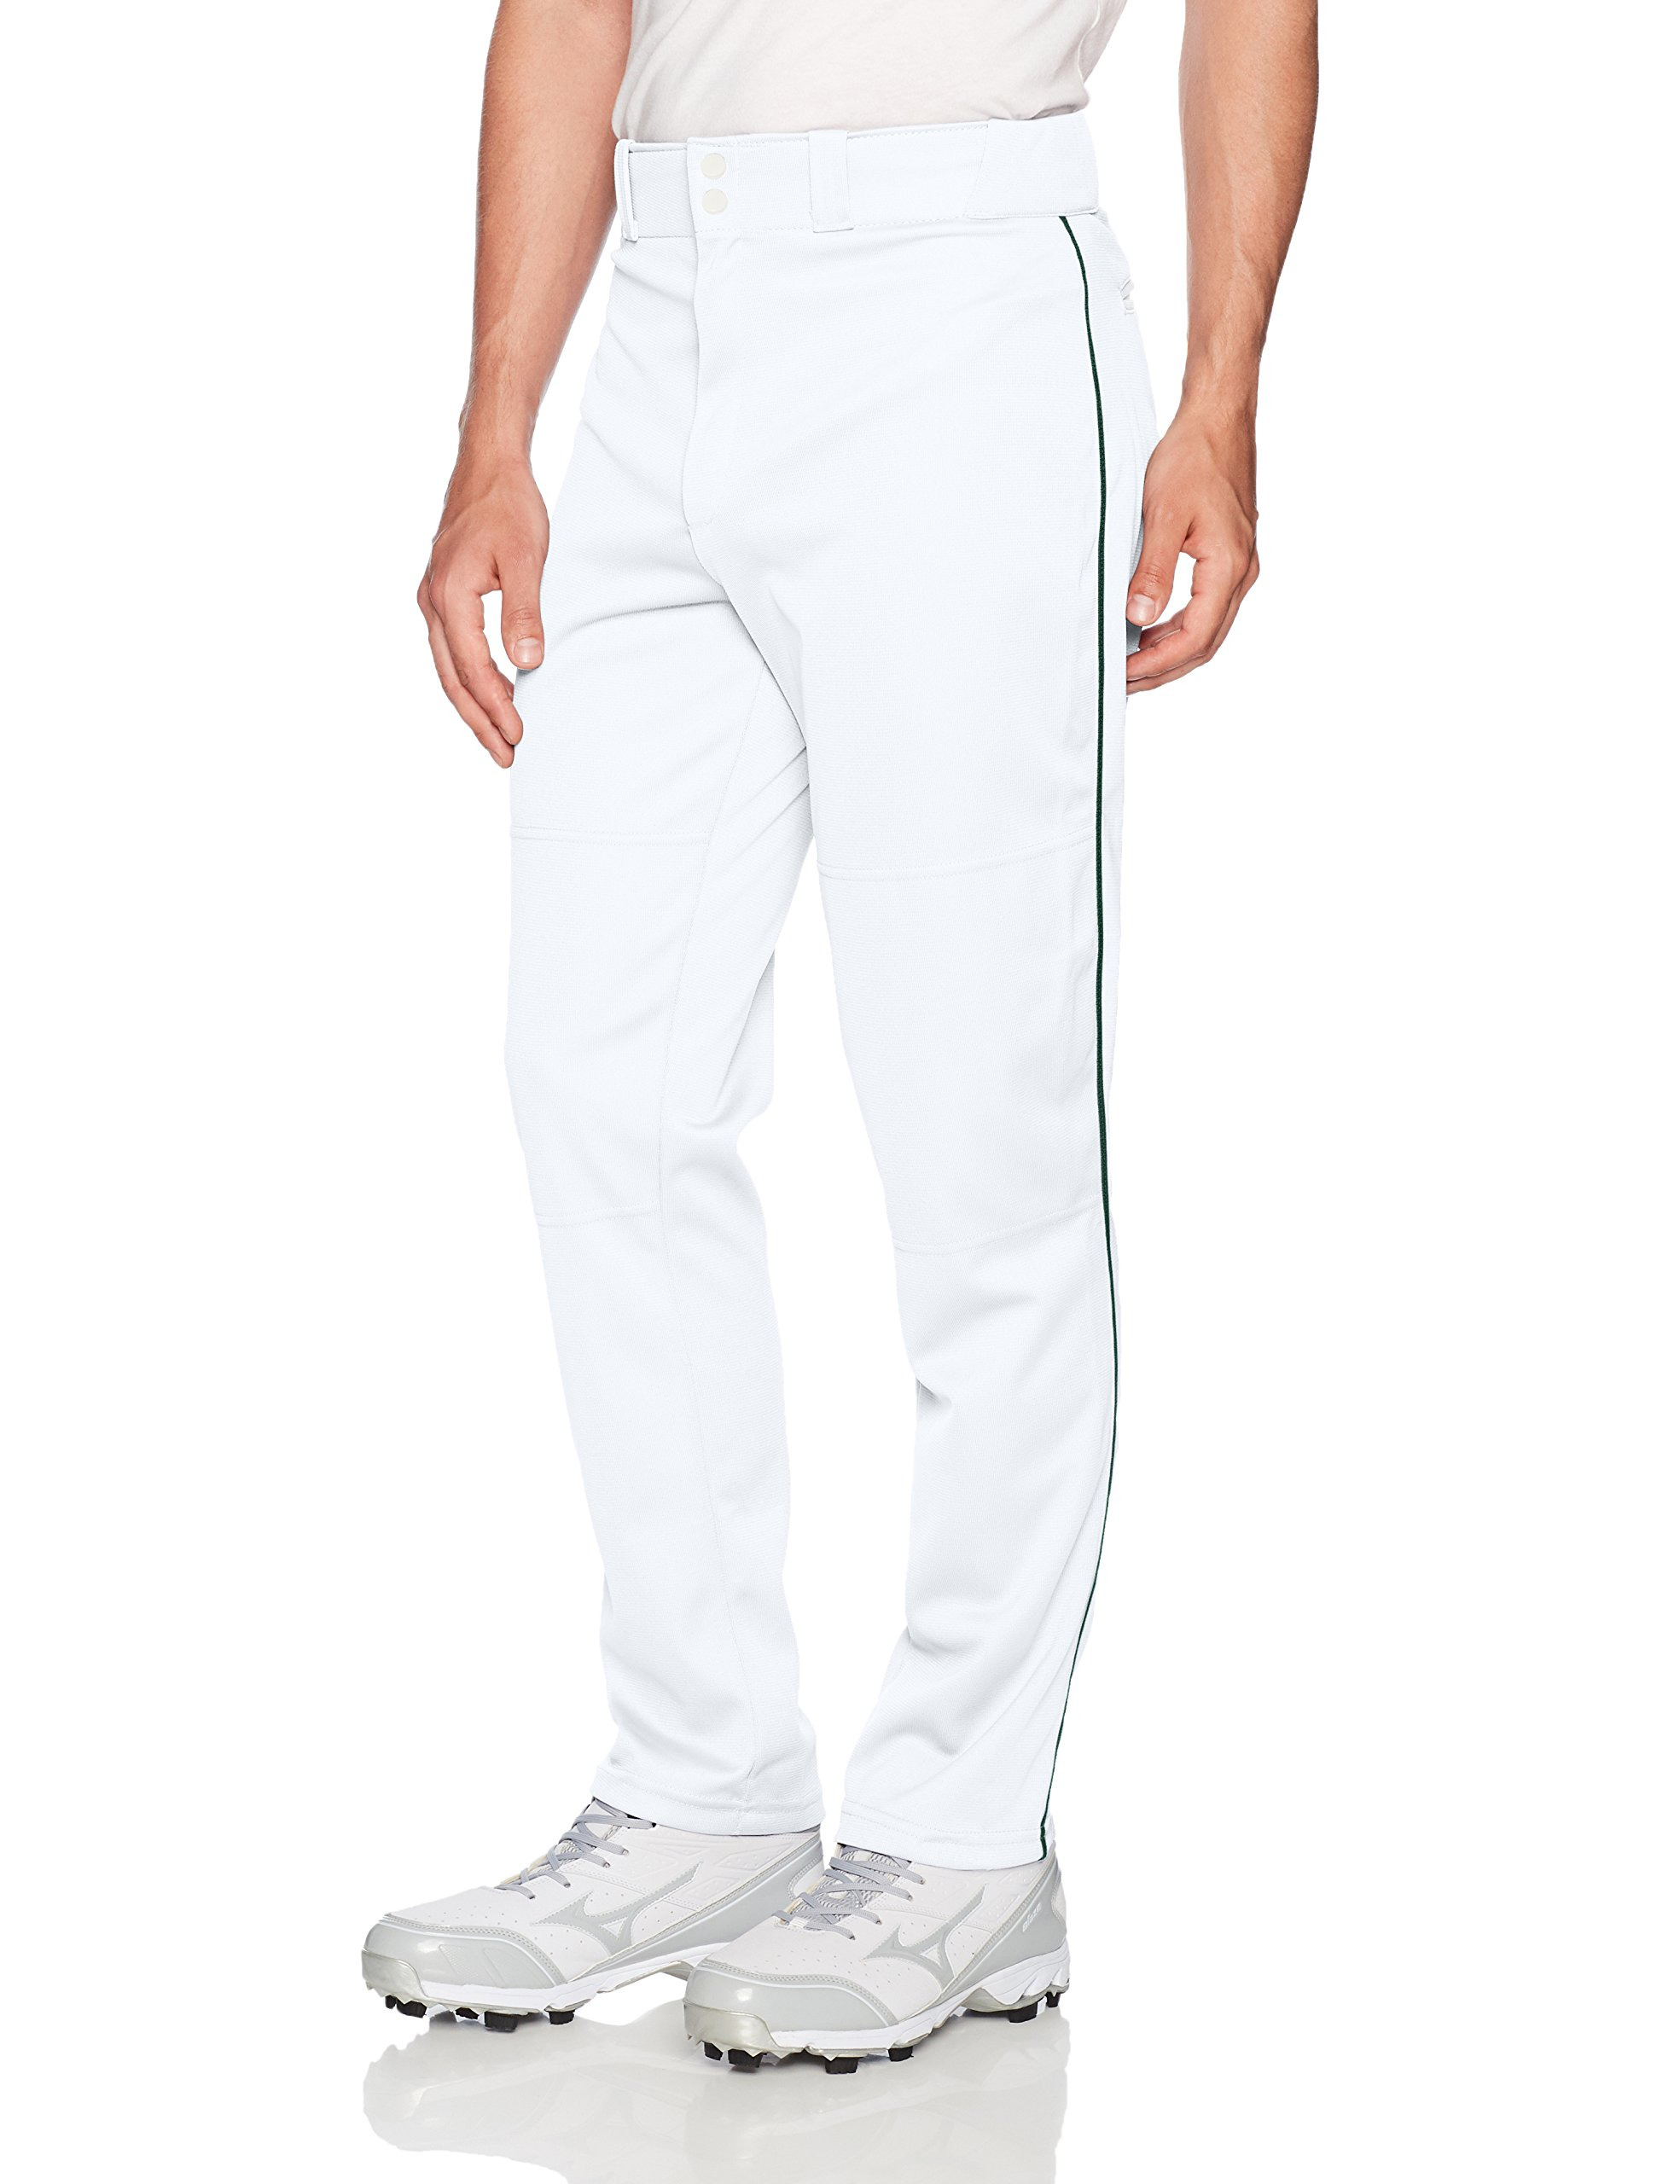 Wilson Men's Classic Relaxed Fit Piped Baseball Pant, White/Dark Green, XX-Large by Wilson